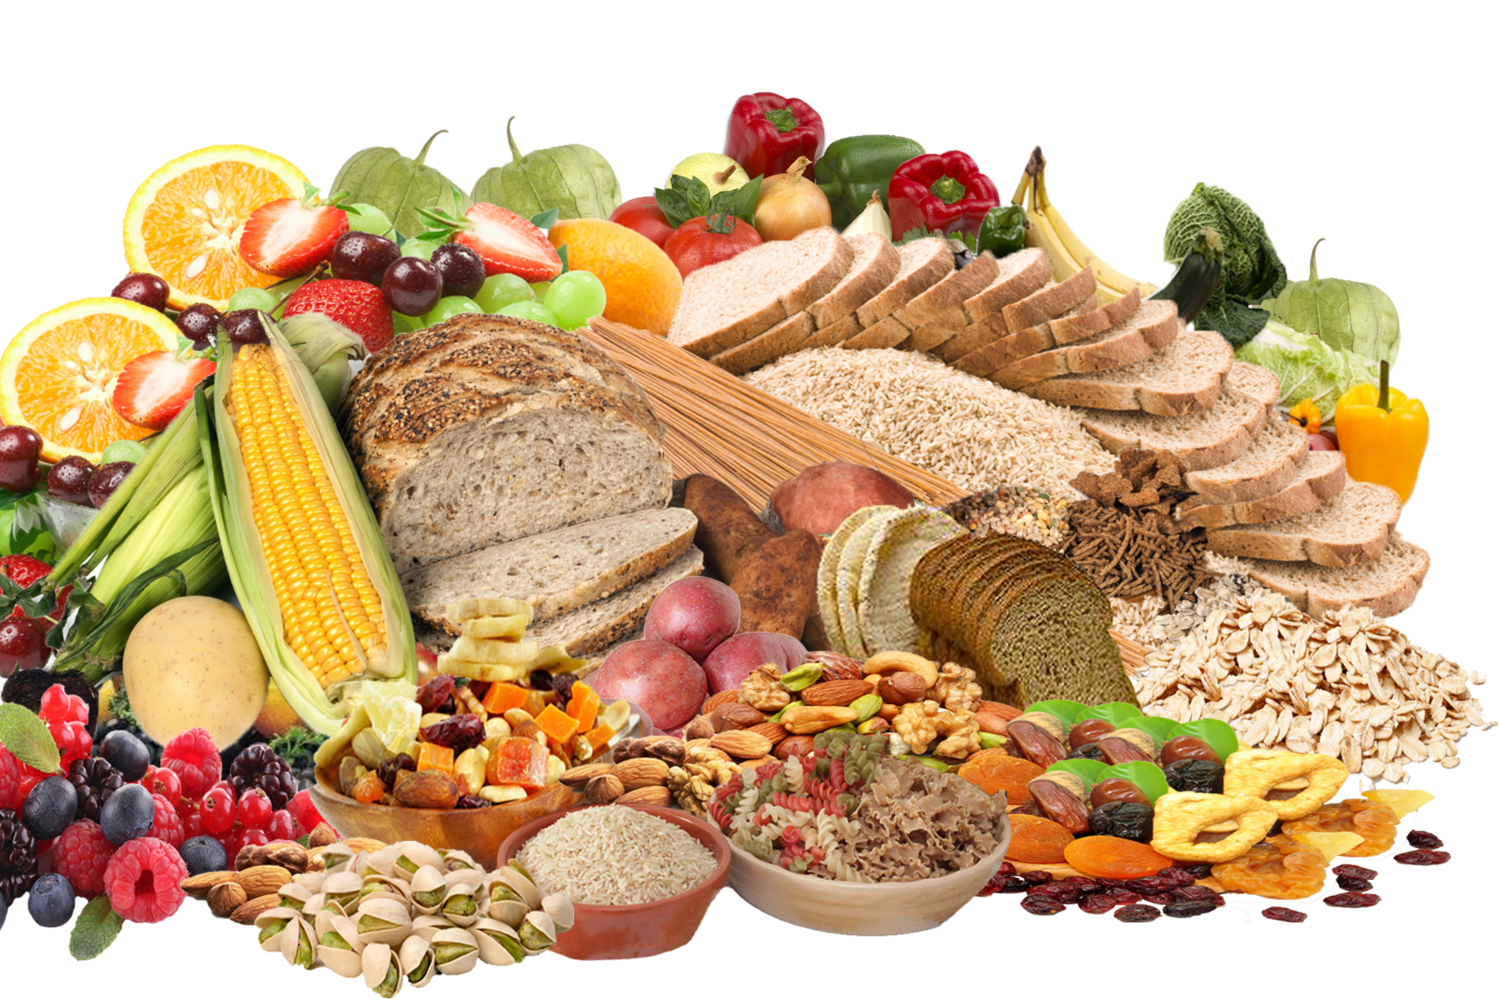 carbohydrates-carbohydrates-png-1500-1000.png